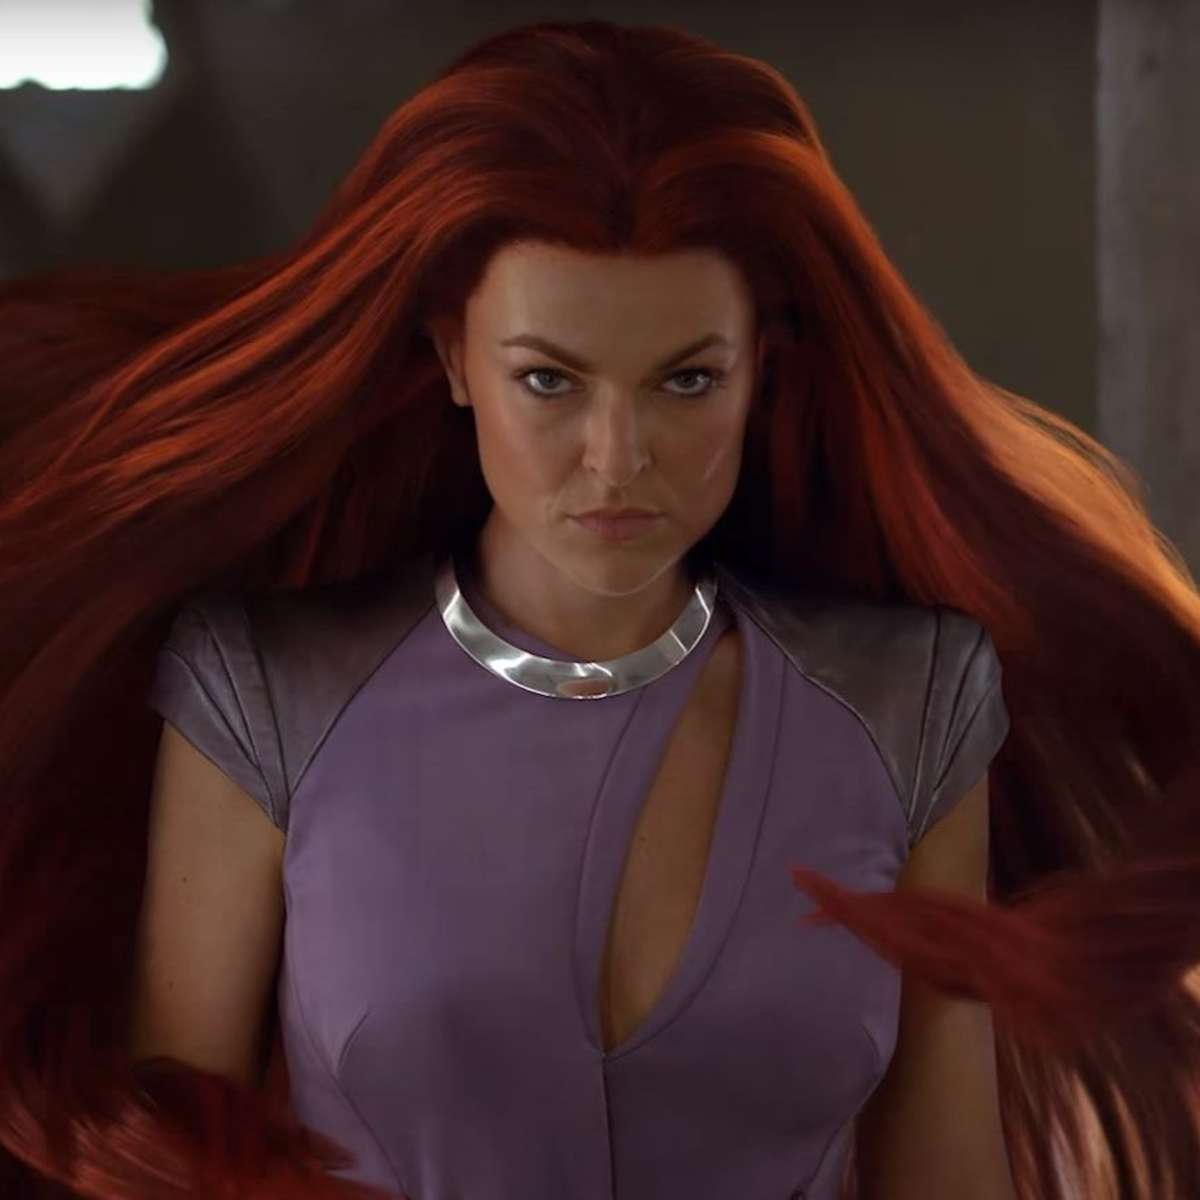 medusa-marvel-inhumans-abc-hair-header-1.jpg